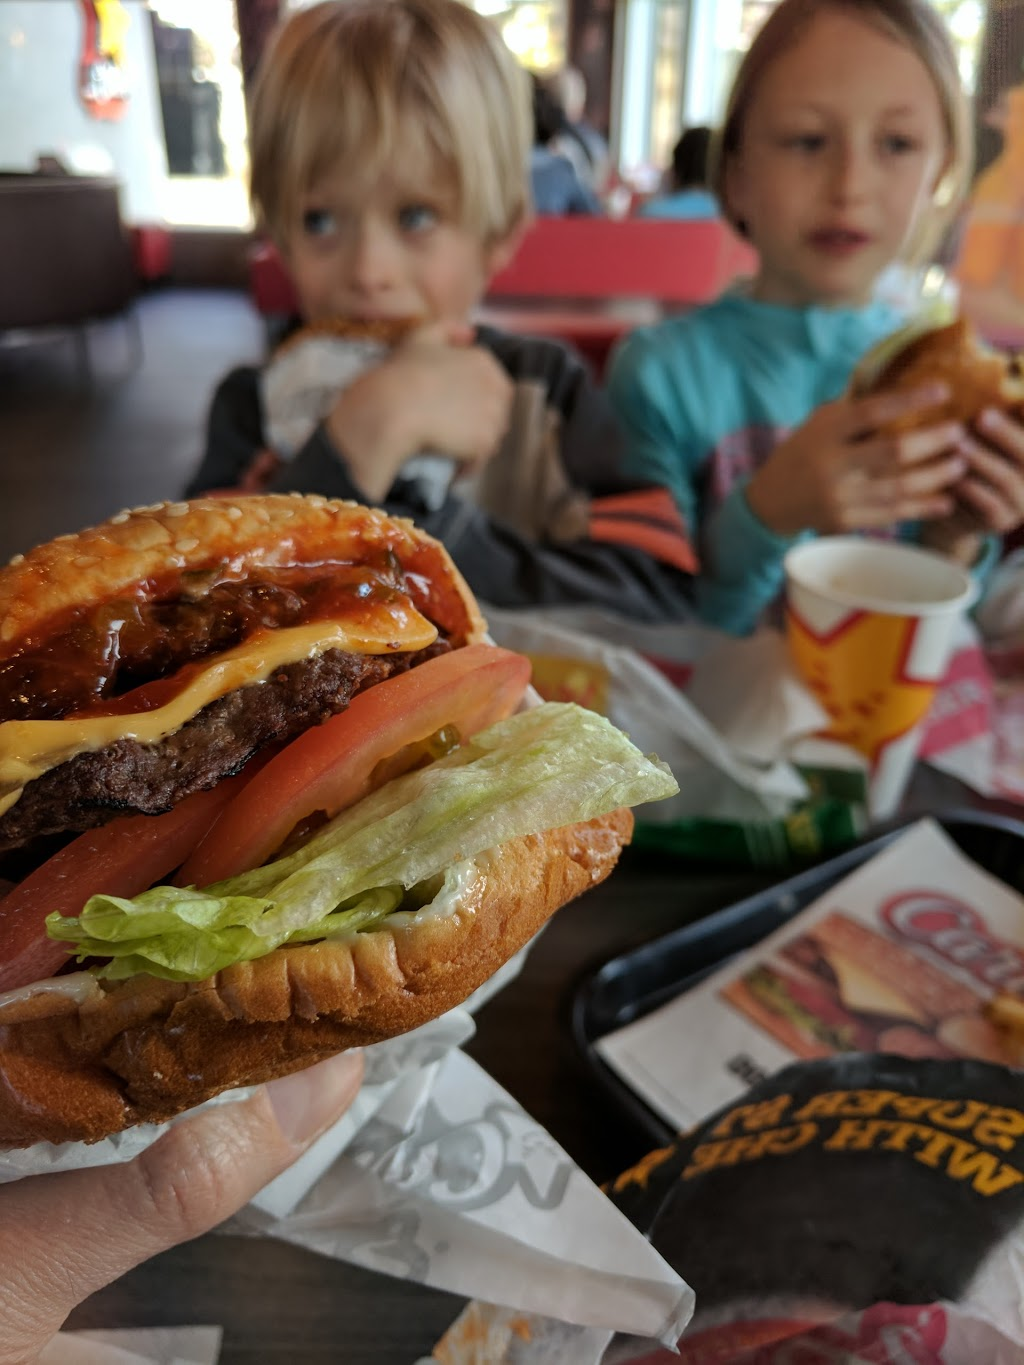 Carls Jr. | restaurant | 5211 MACLEOD TRAIL STE SW # 100, Calgary, AB T2H 0J3, Canada | 4034520066 OR +1 403-452-0066